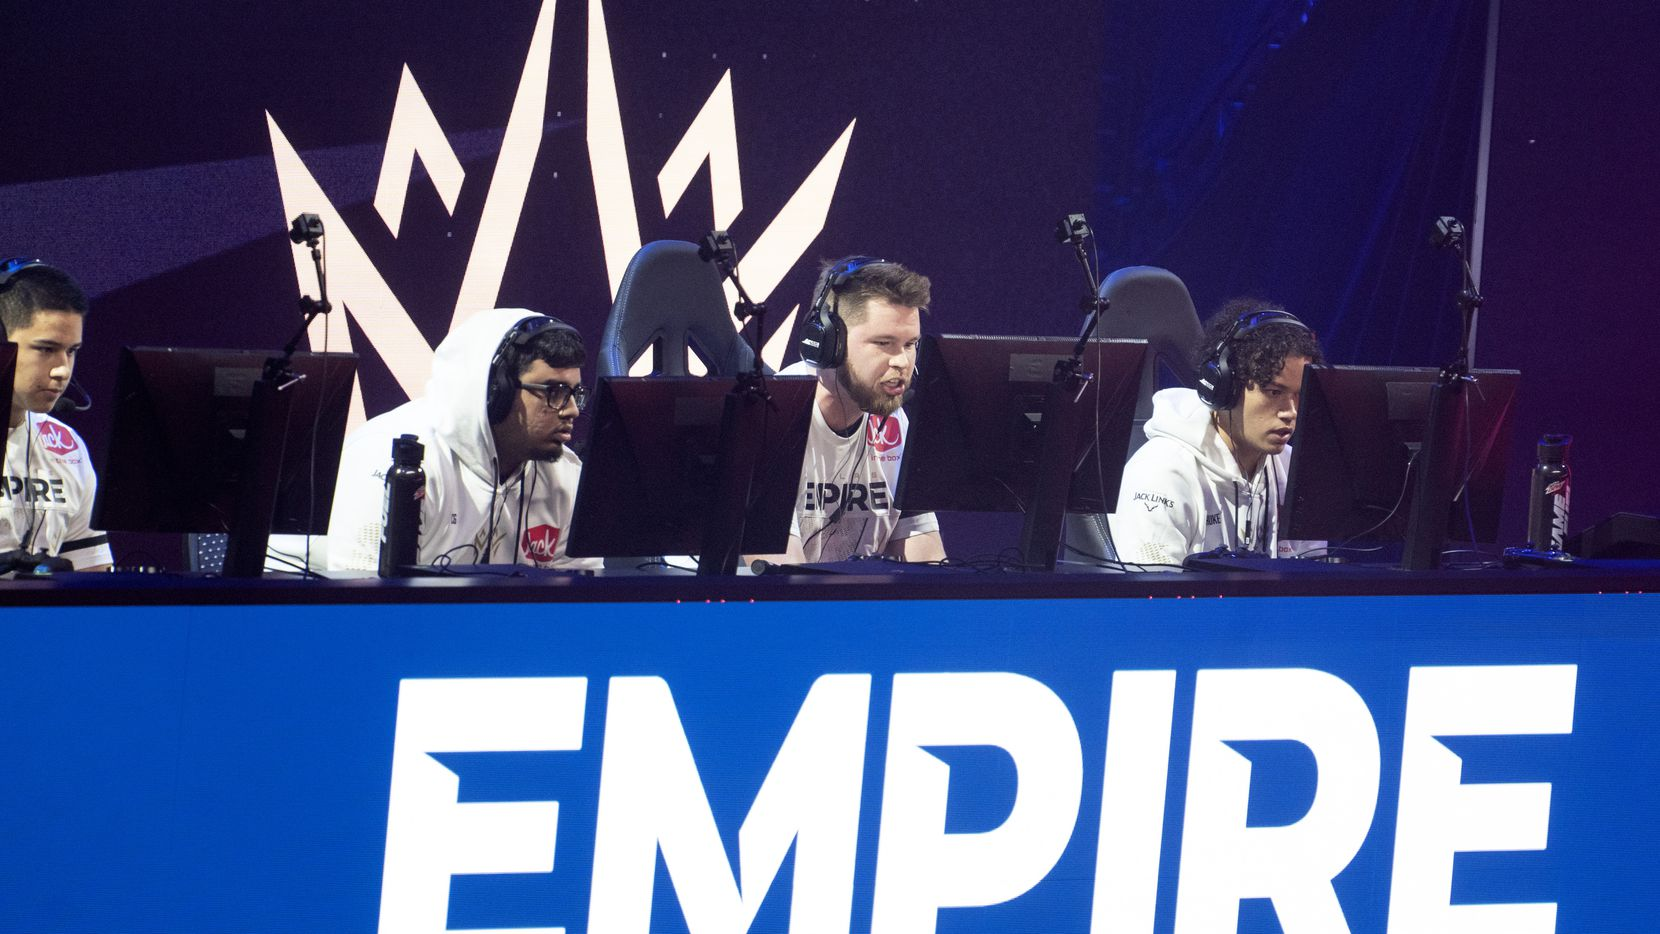 Dallas Empire competes against Atlanta Faze in the Call of Duty League Launch Weekend at the Armory in Minneapolis, Minn., January 25, 2020.